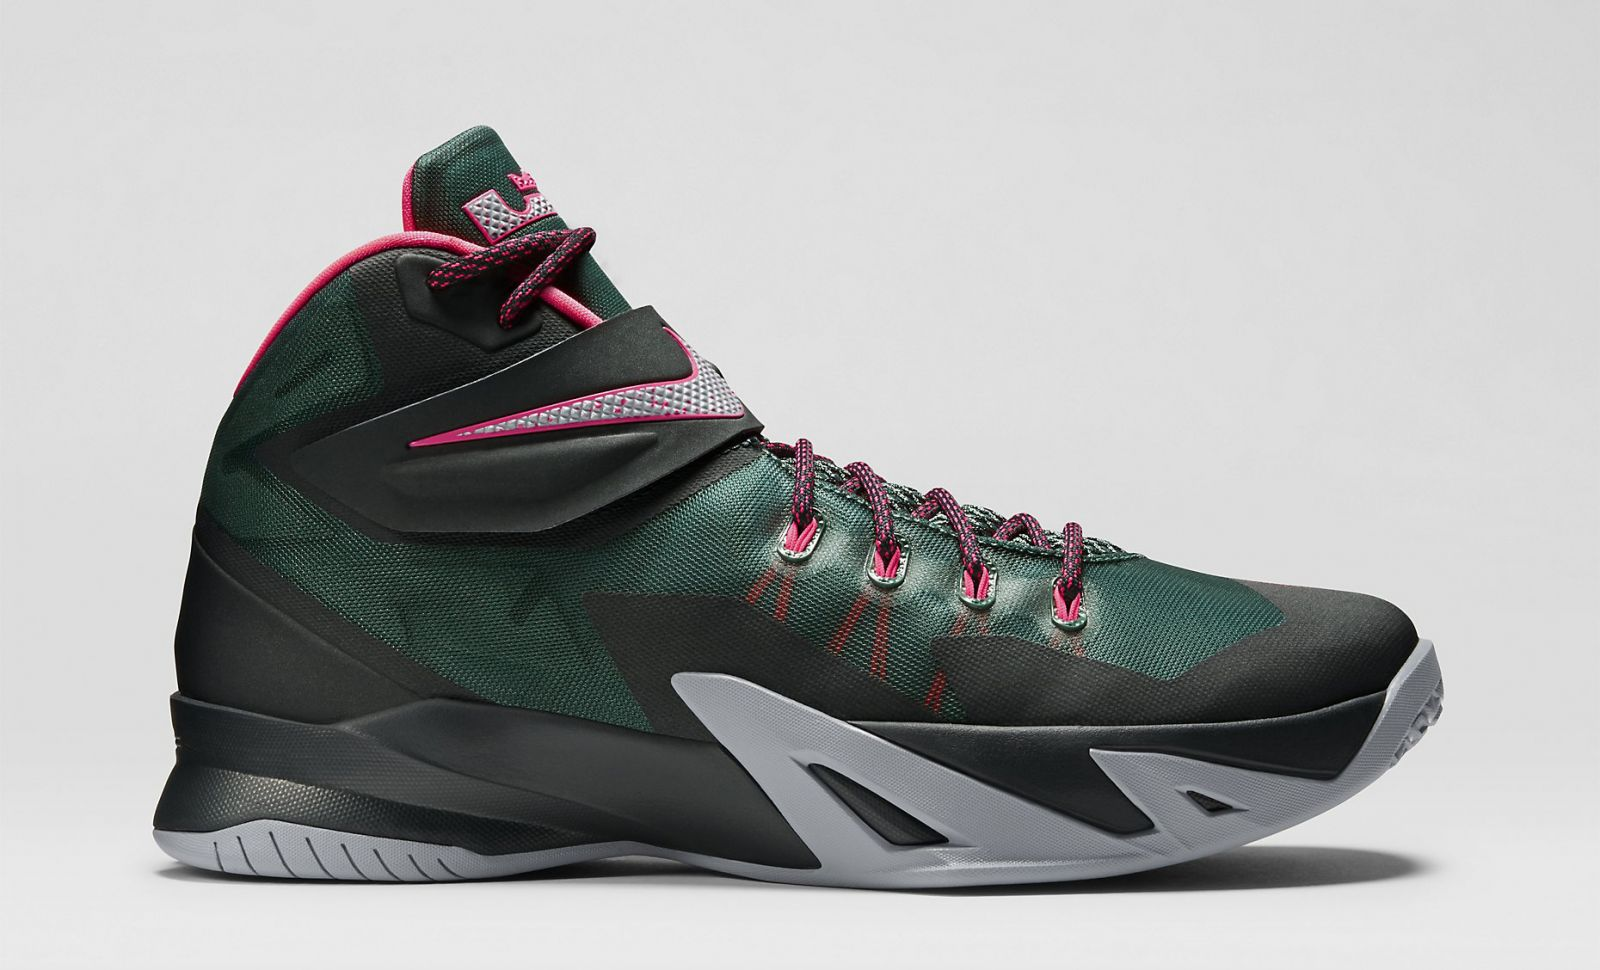 The Nike Zoom Soldier 8 in Black and Hyper Punch